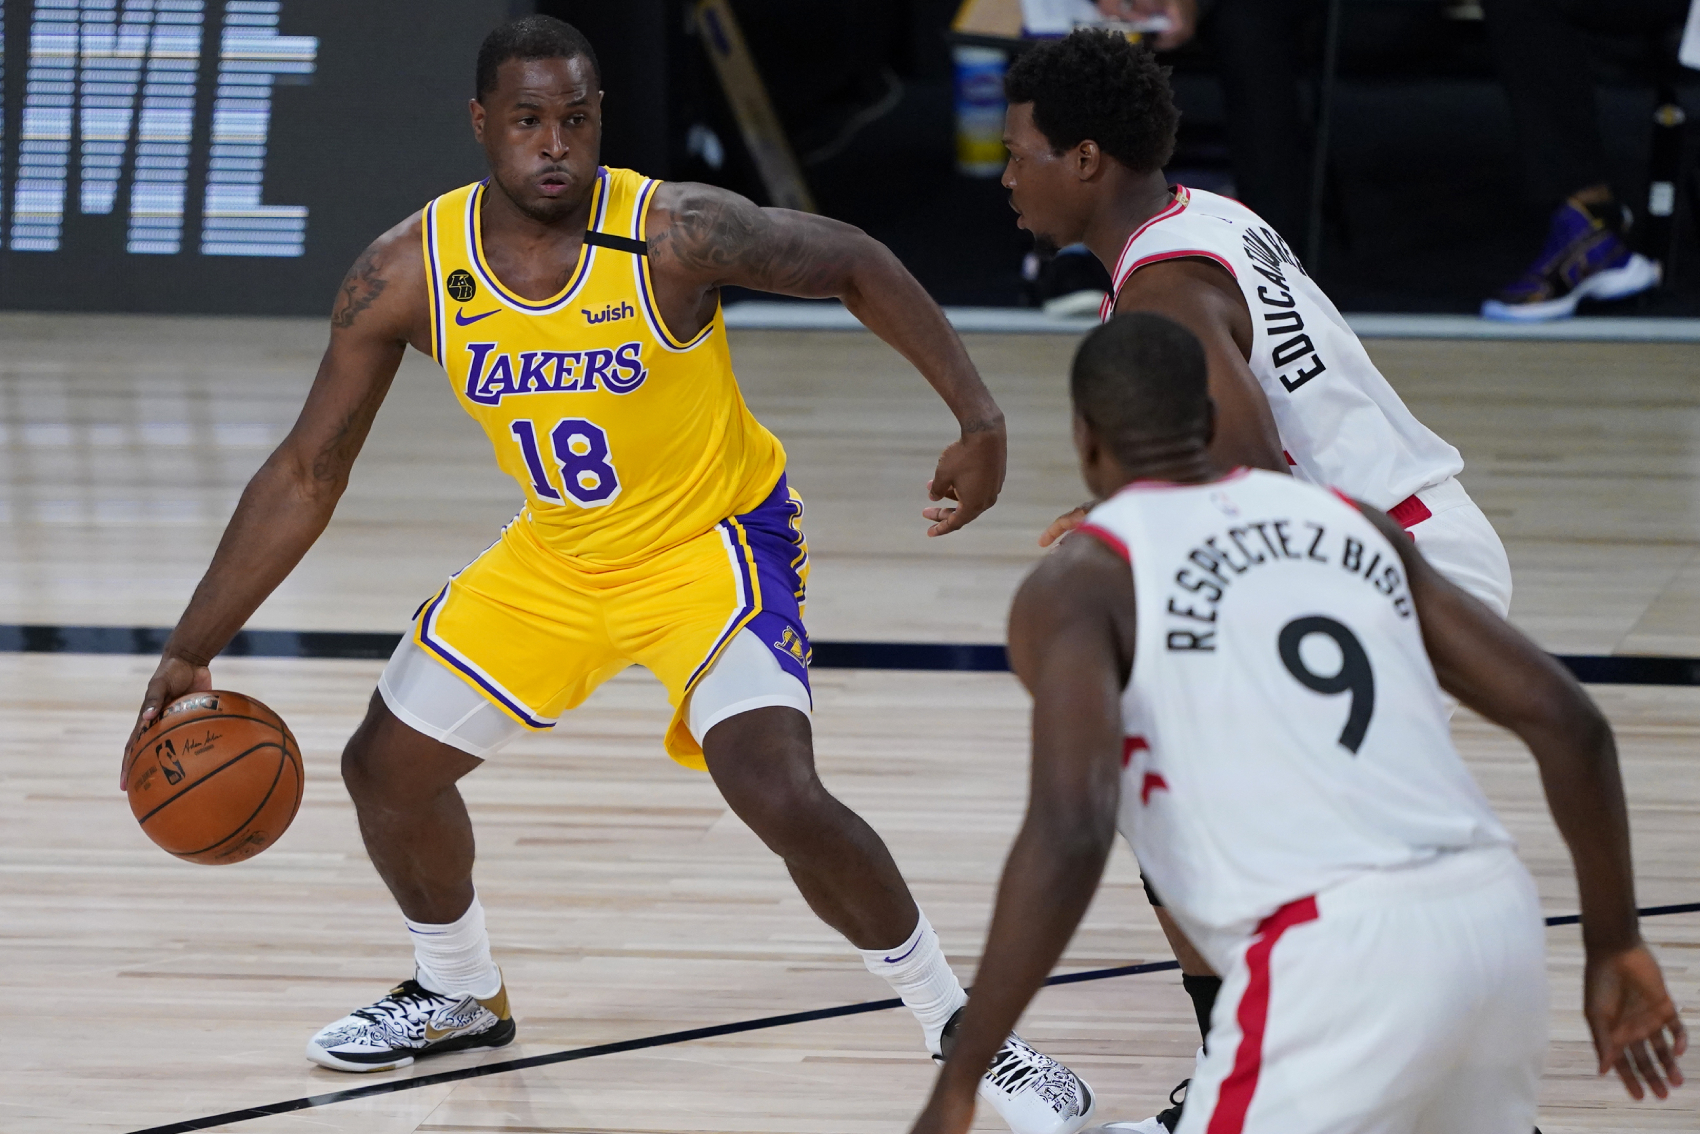 Dion Waiters has had an up-and-down NBA career with the Cavs, Thunder, Heat, and Lakers. So, how much does he make and what is his net worth?